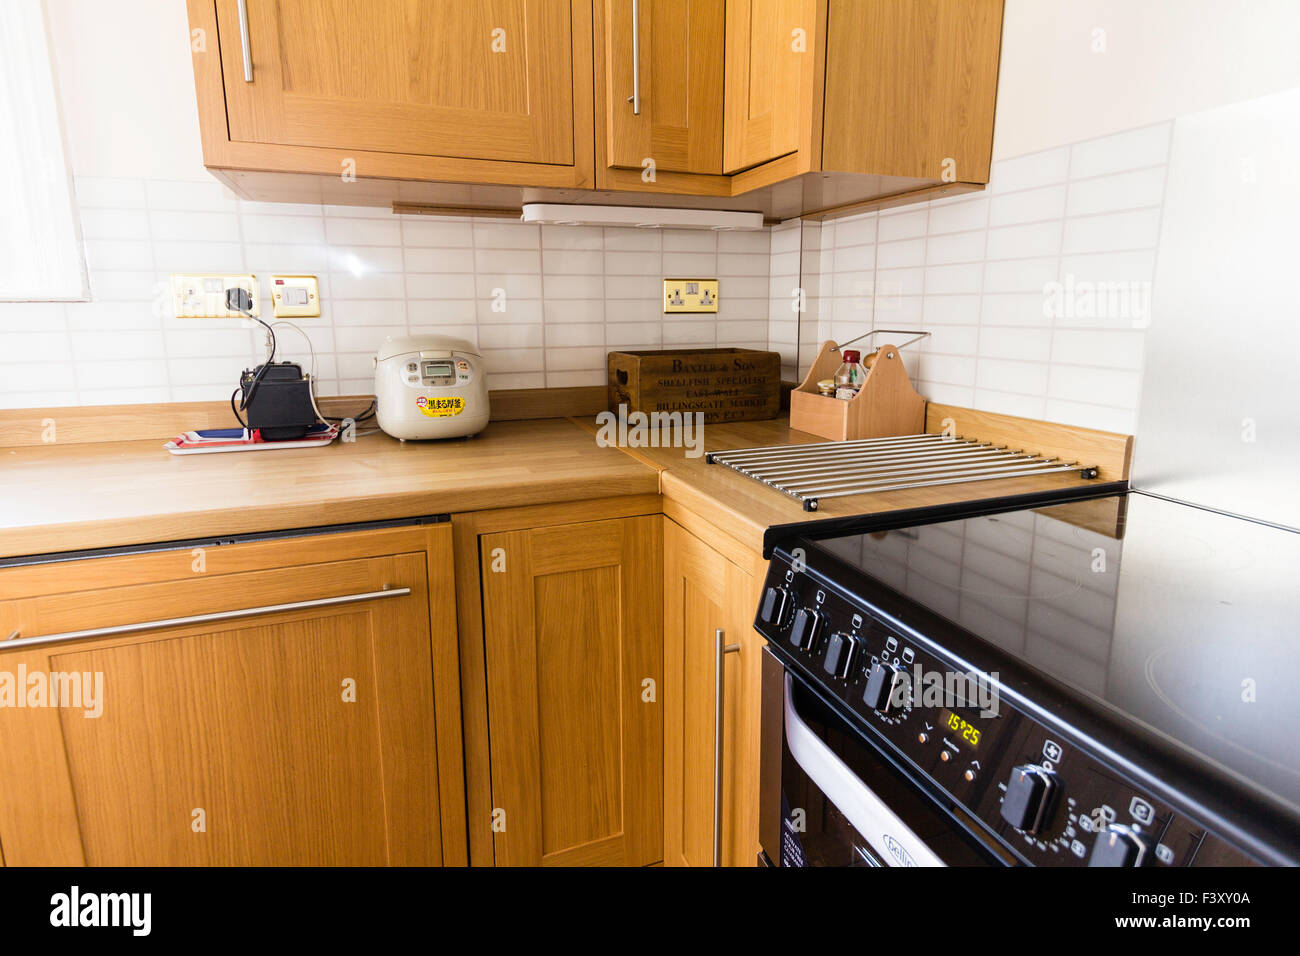 Newly Decorated Kitchen Wooden Cabinates Laminated Worktops And Stock Photo Alamy